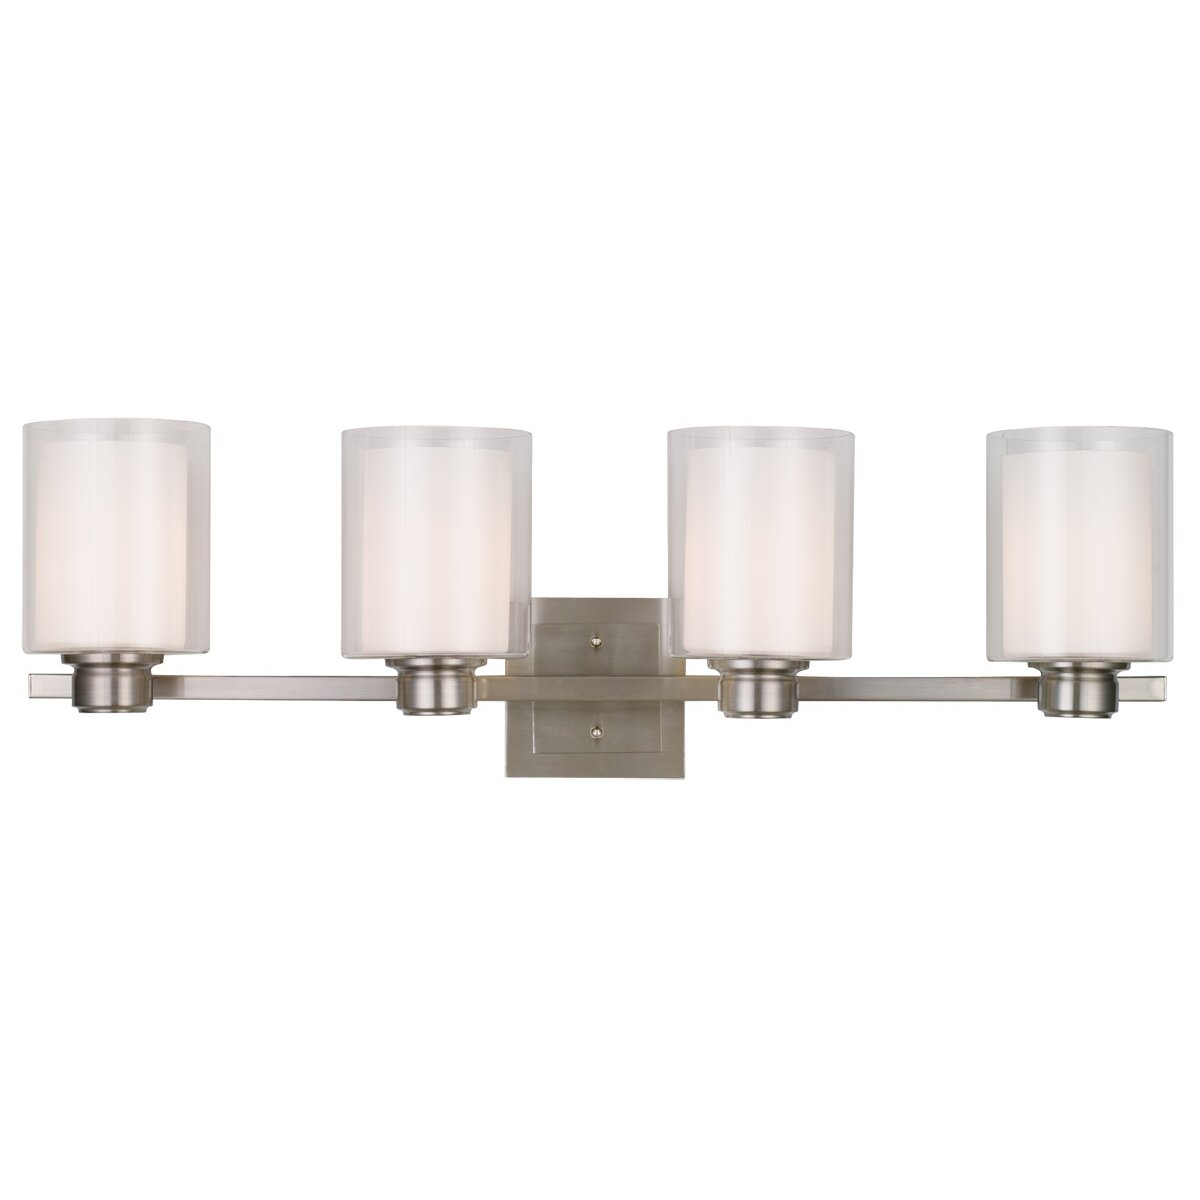 4 light bathroom light oslo 4 light bath vanity light wayfair 15309